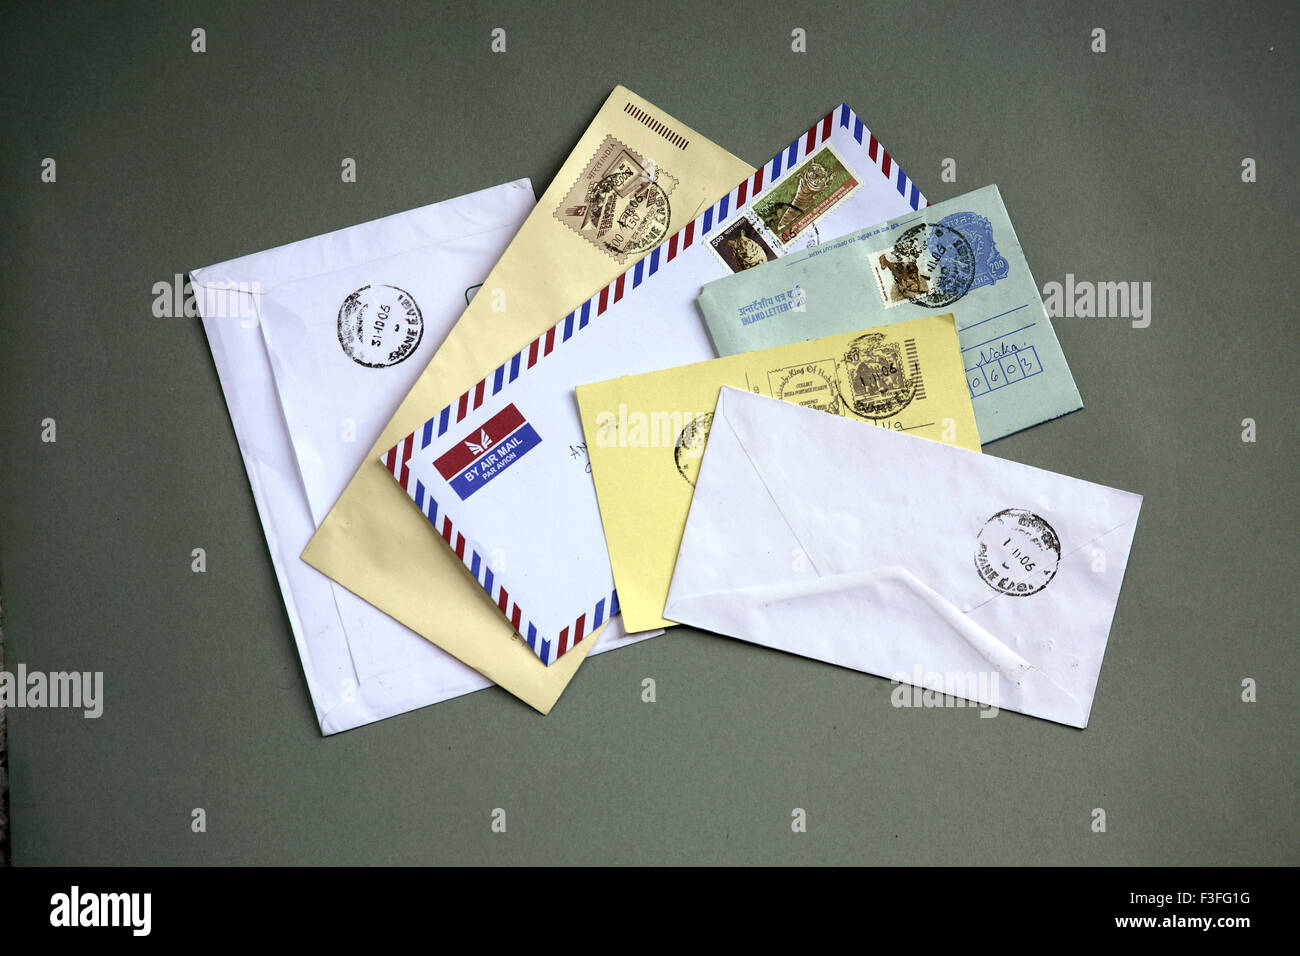 Indian Postage Envelop Inland Letter Airmail Post Card Stock